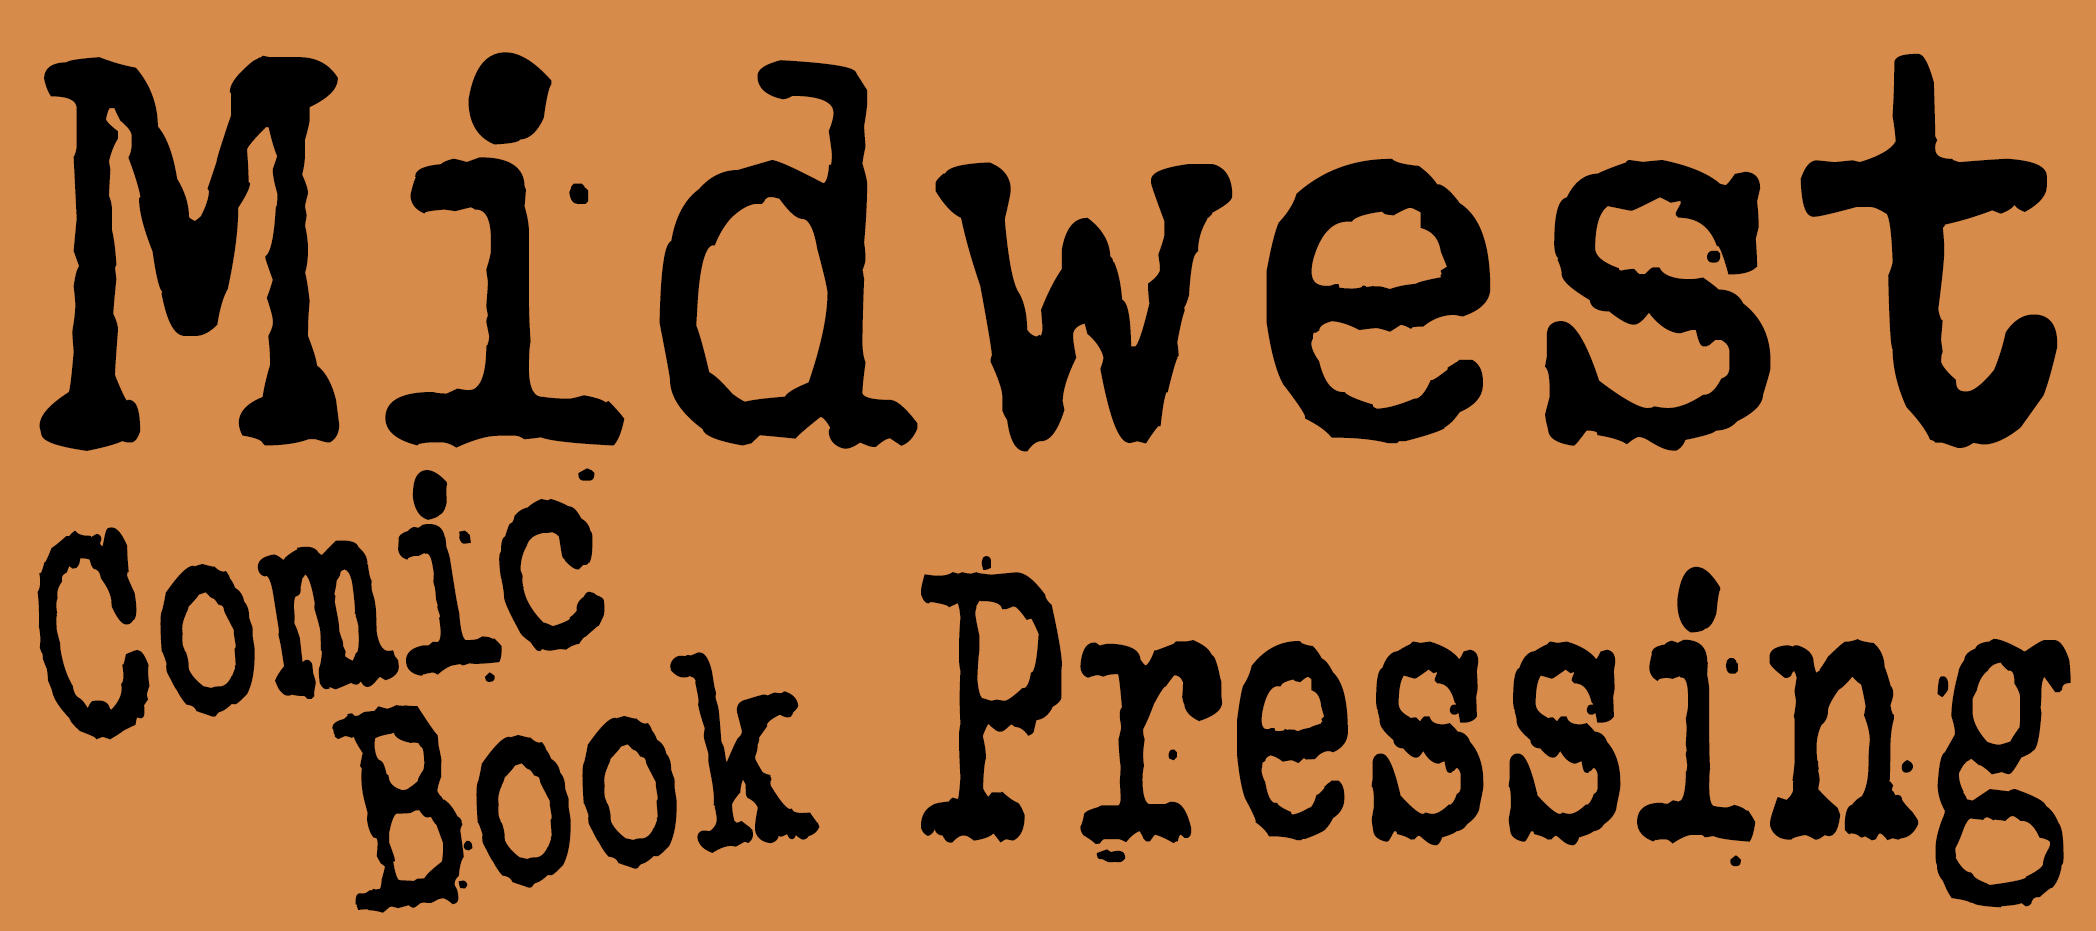 Midwest Comic Book Pressing